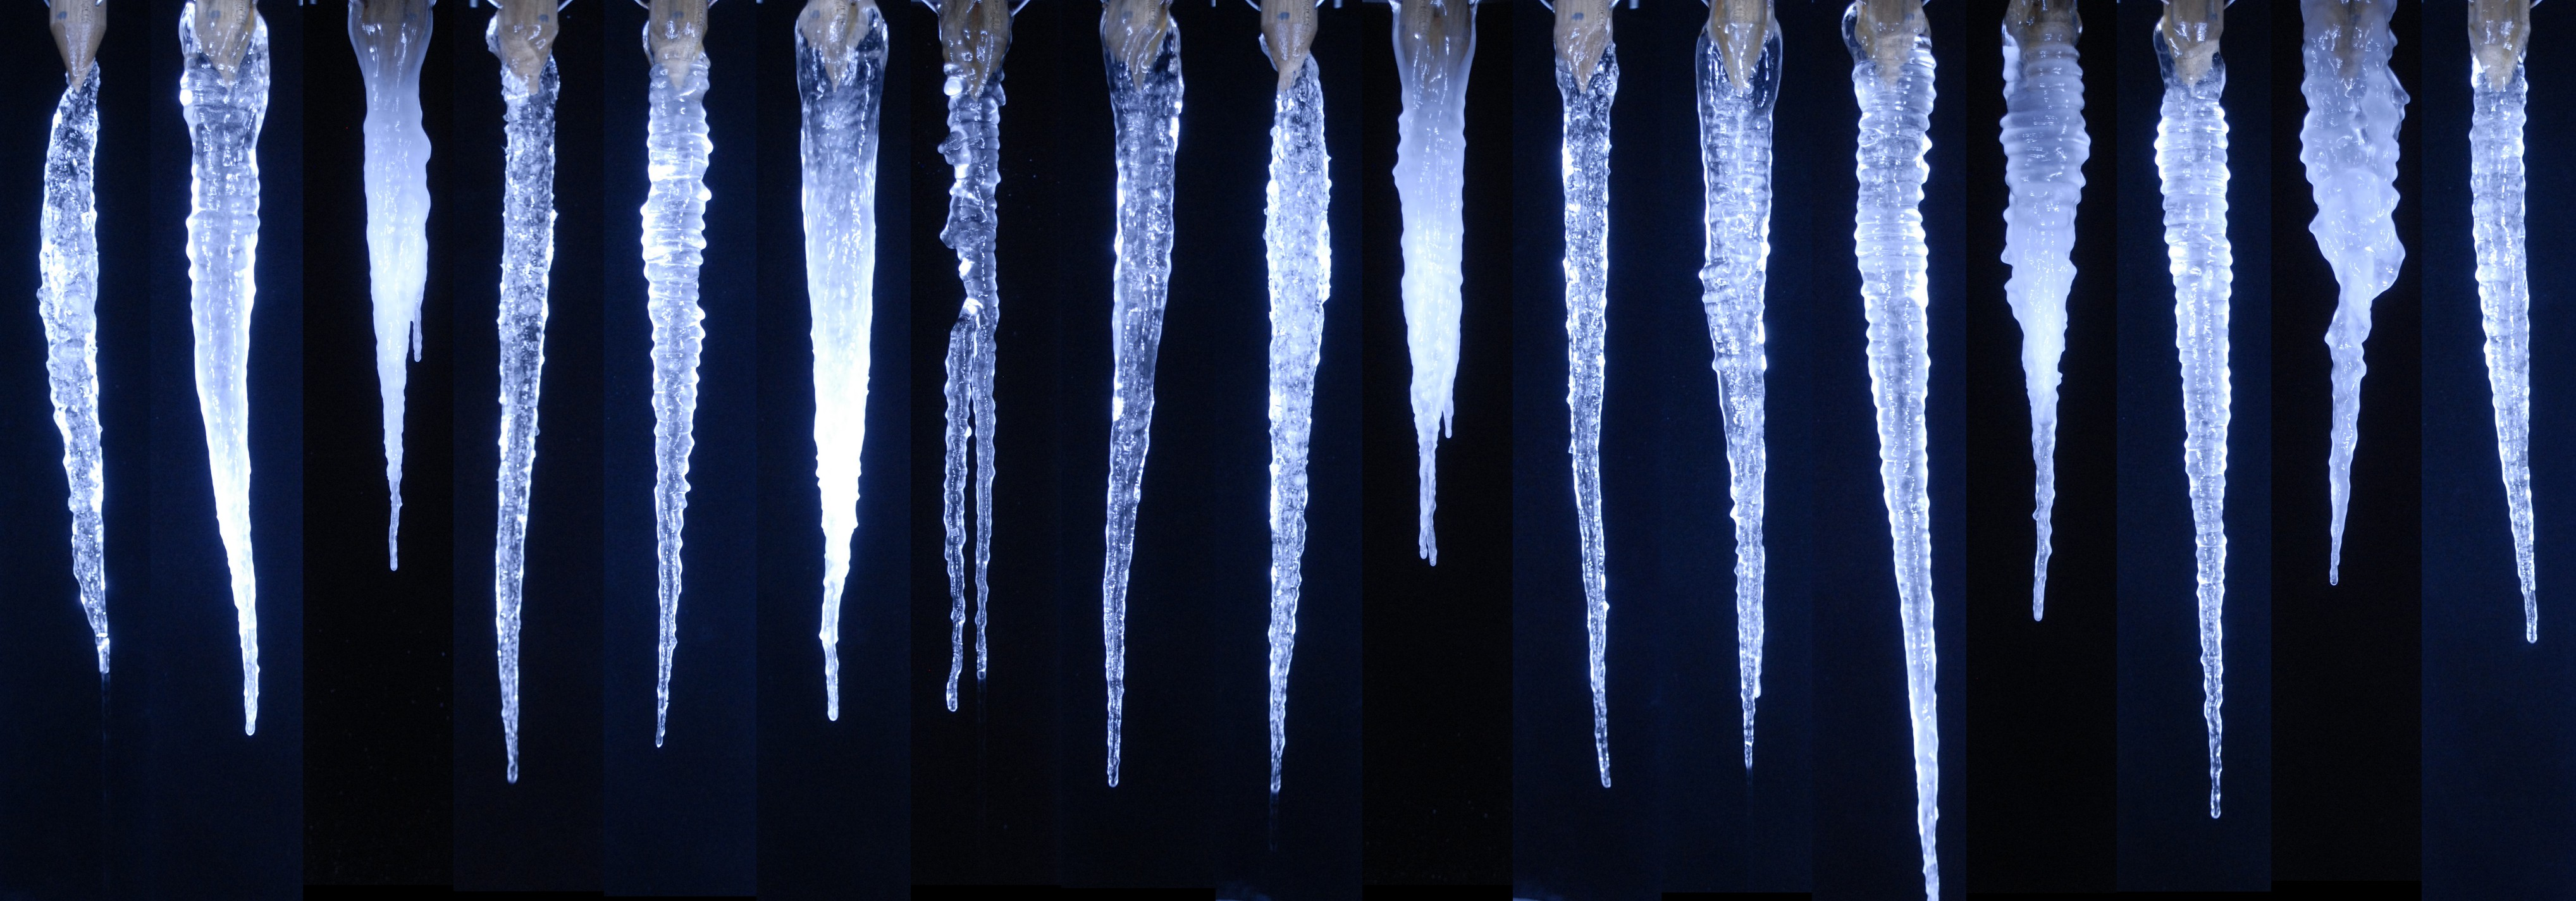 Why Tiny Ripples on Icicles Baffle Scientists - Motherboard